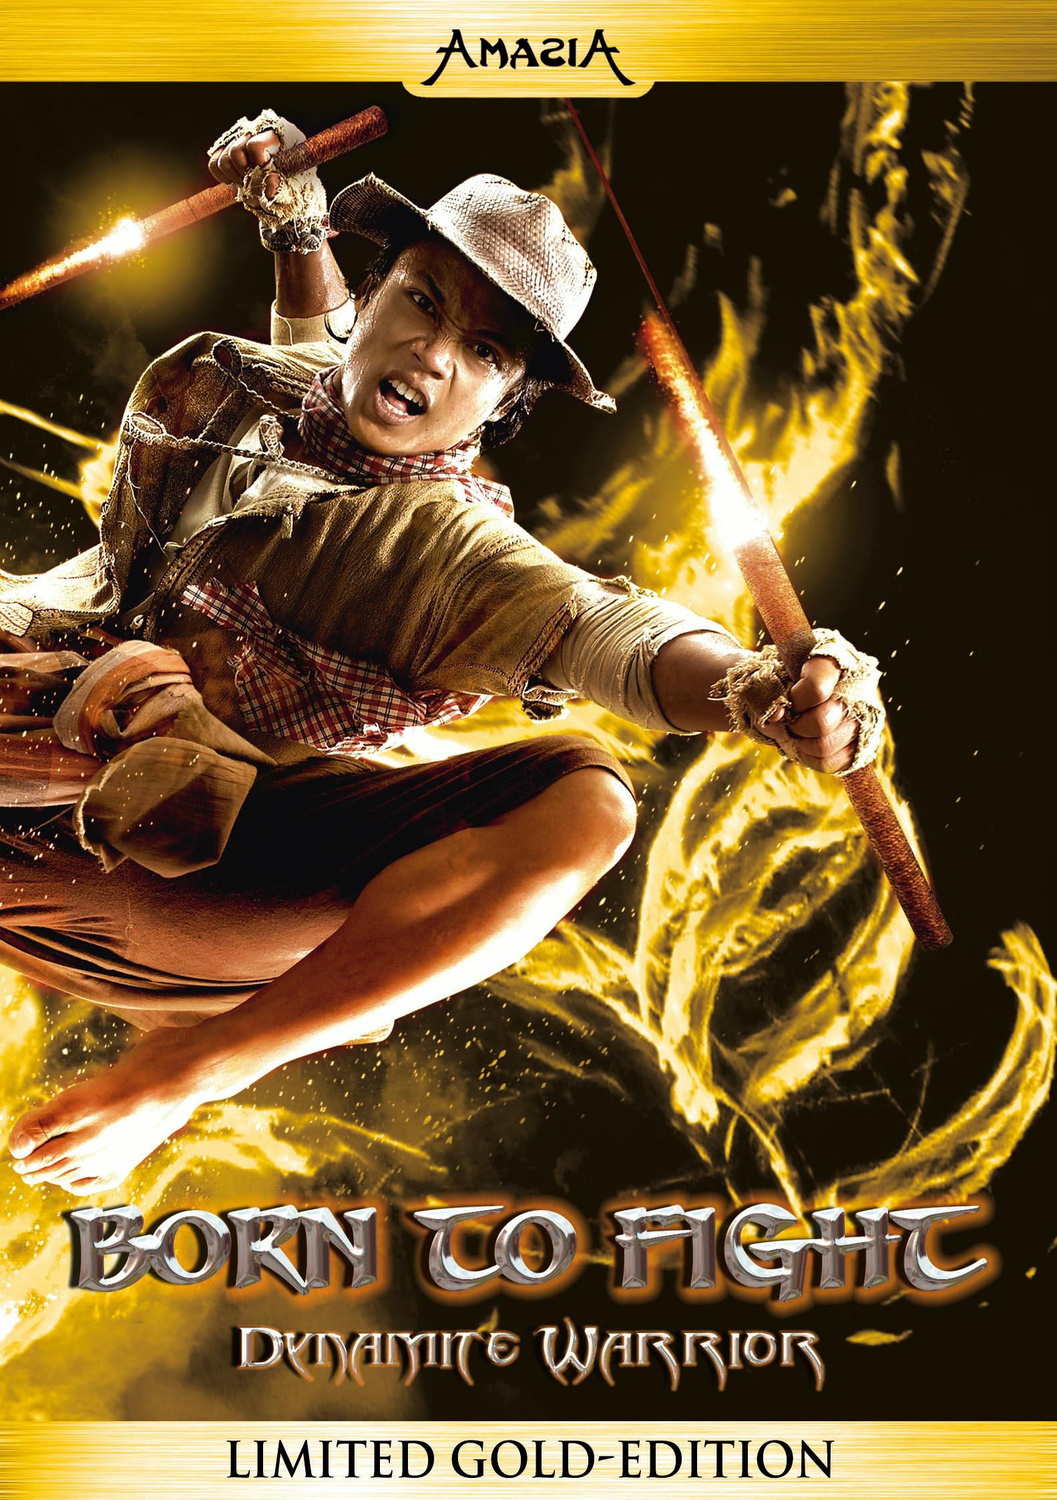 Born to Fight - Limited Gold Edition - Dynamite Warrior